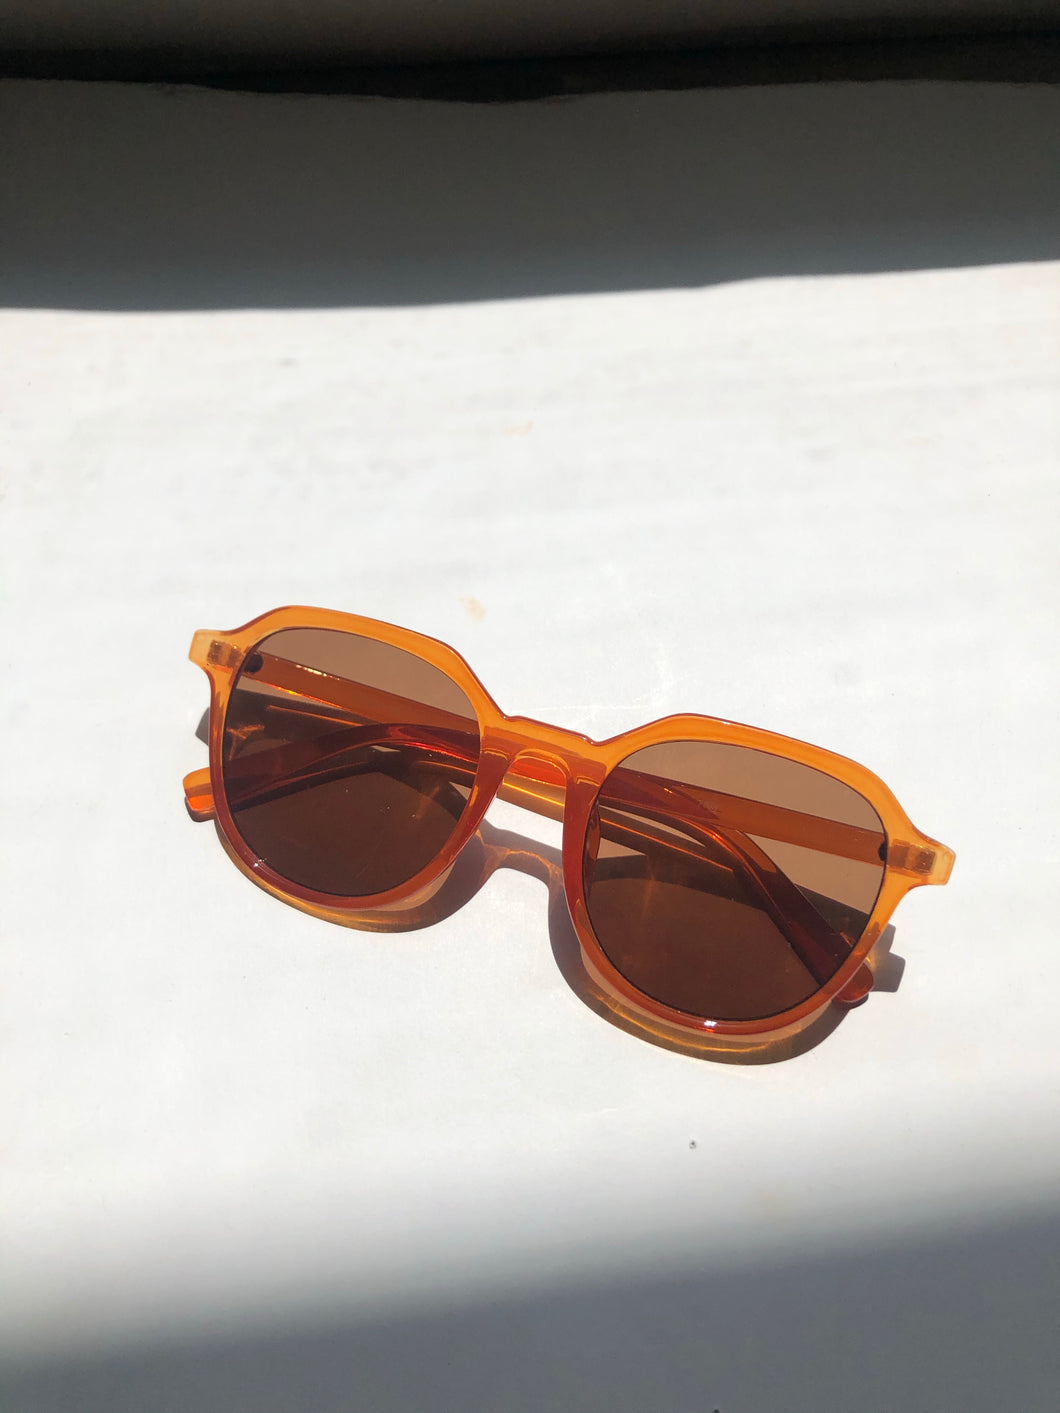 Ana Sunglasses In Tangerine